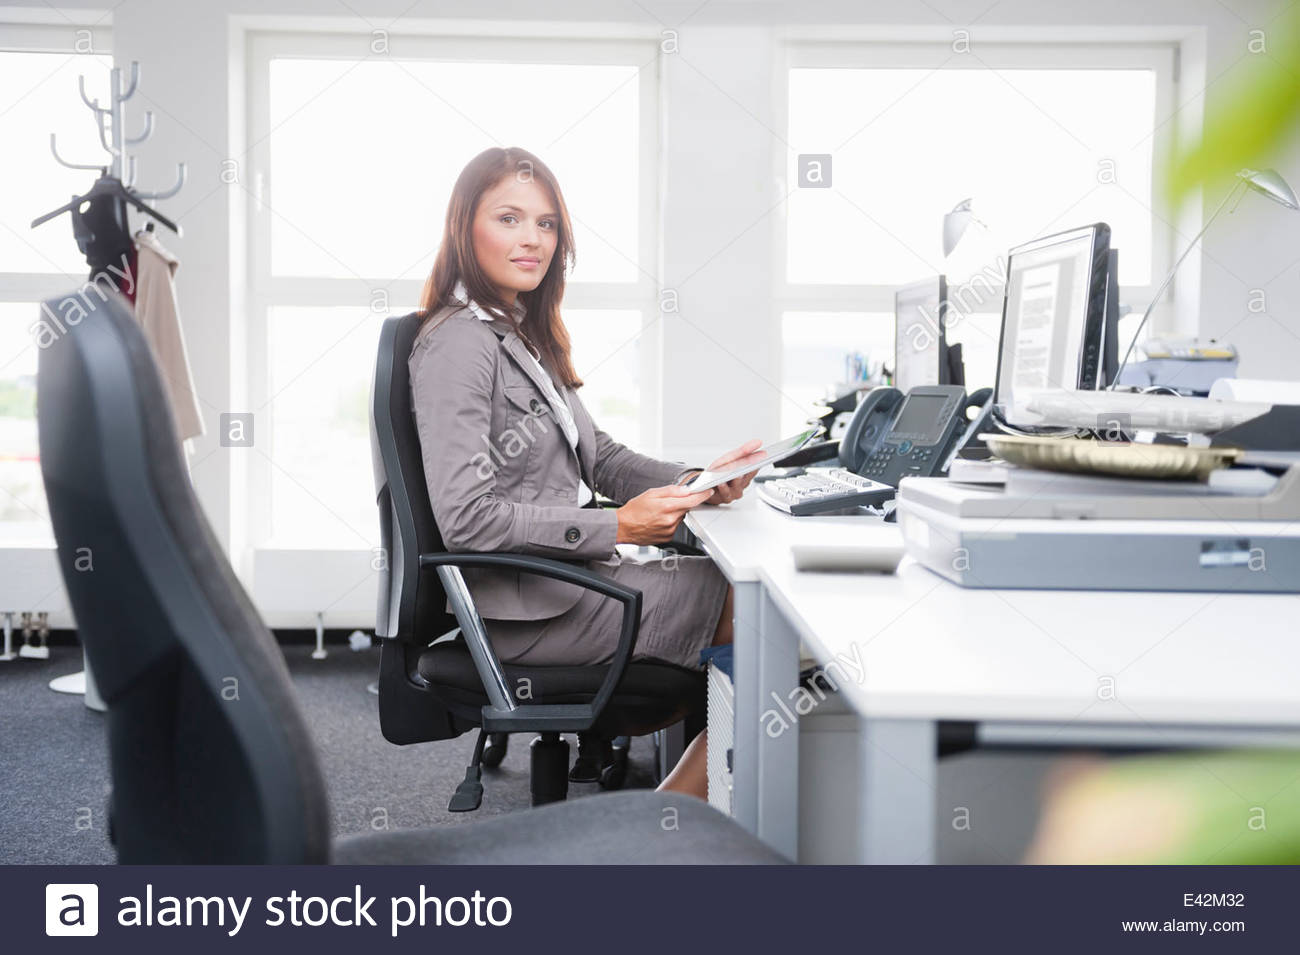 Mid adult woman sitting at desk - Stock Image